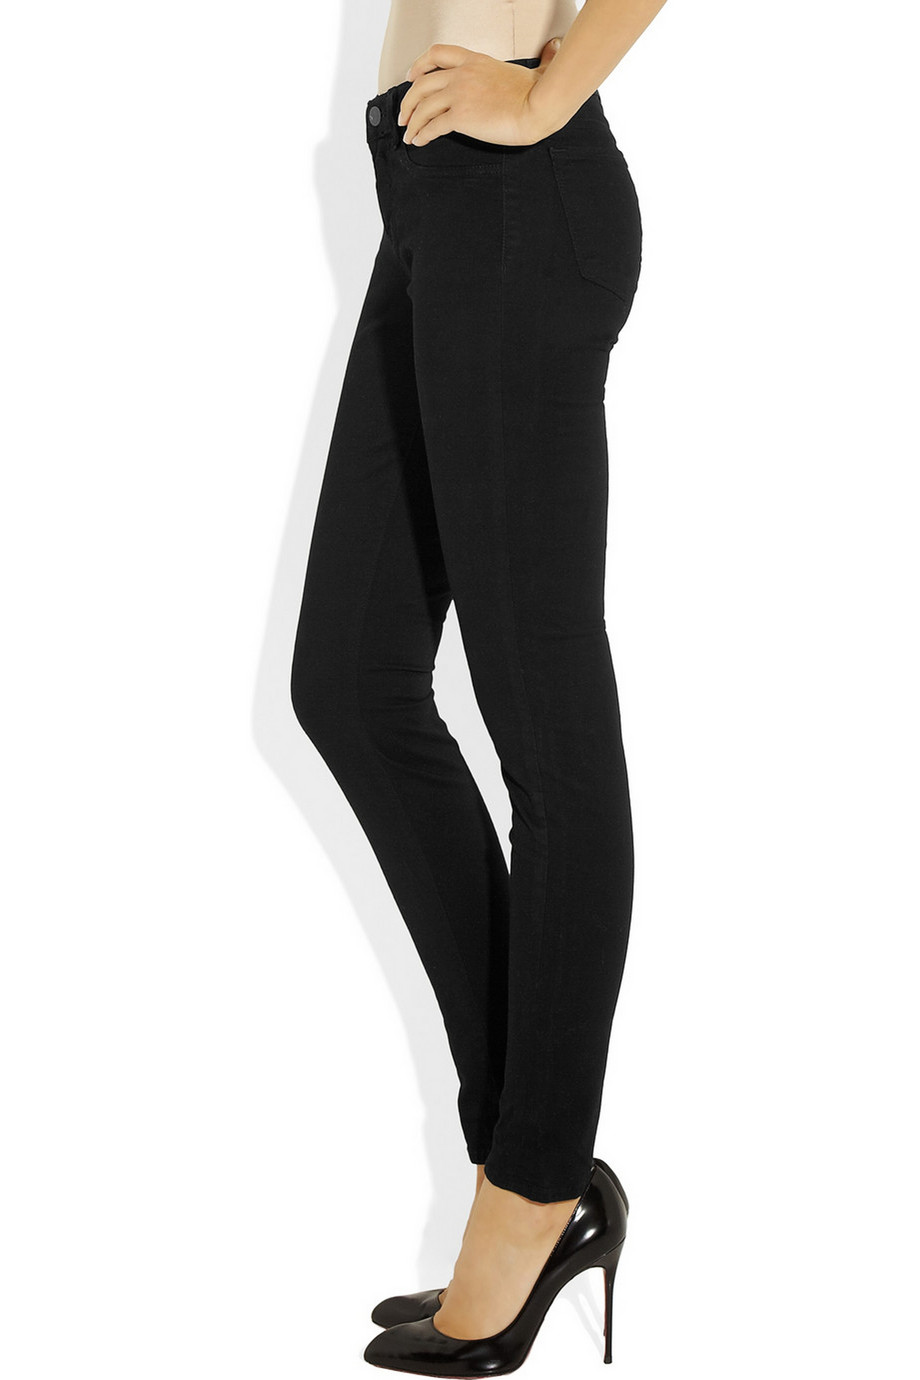 J Brand 811 mid-rise twill skinny jeans – 55% at THE OUTNET.COM